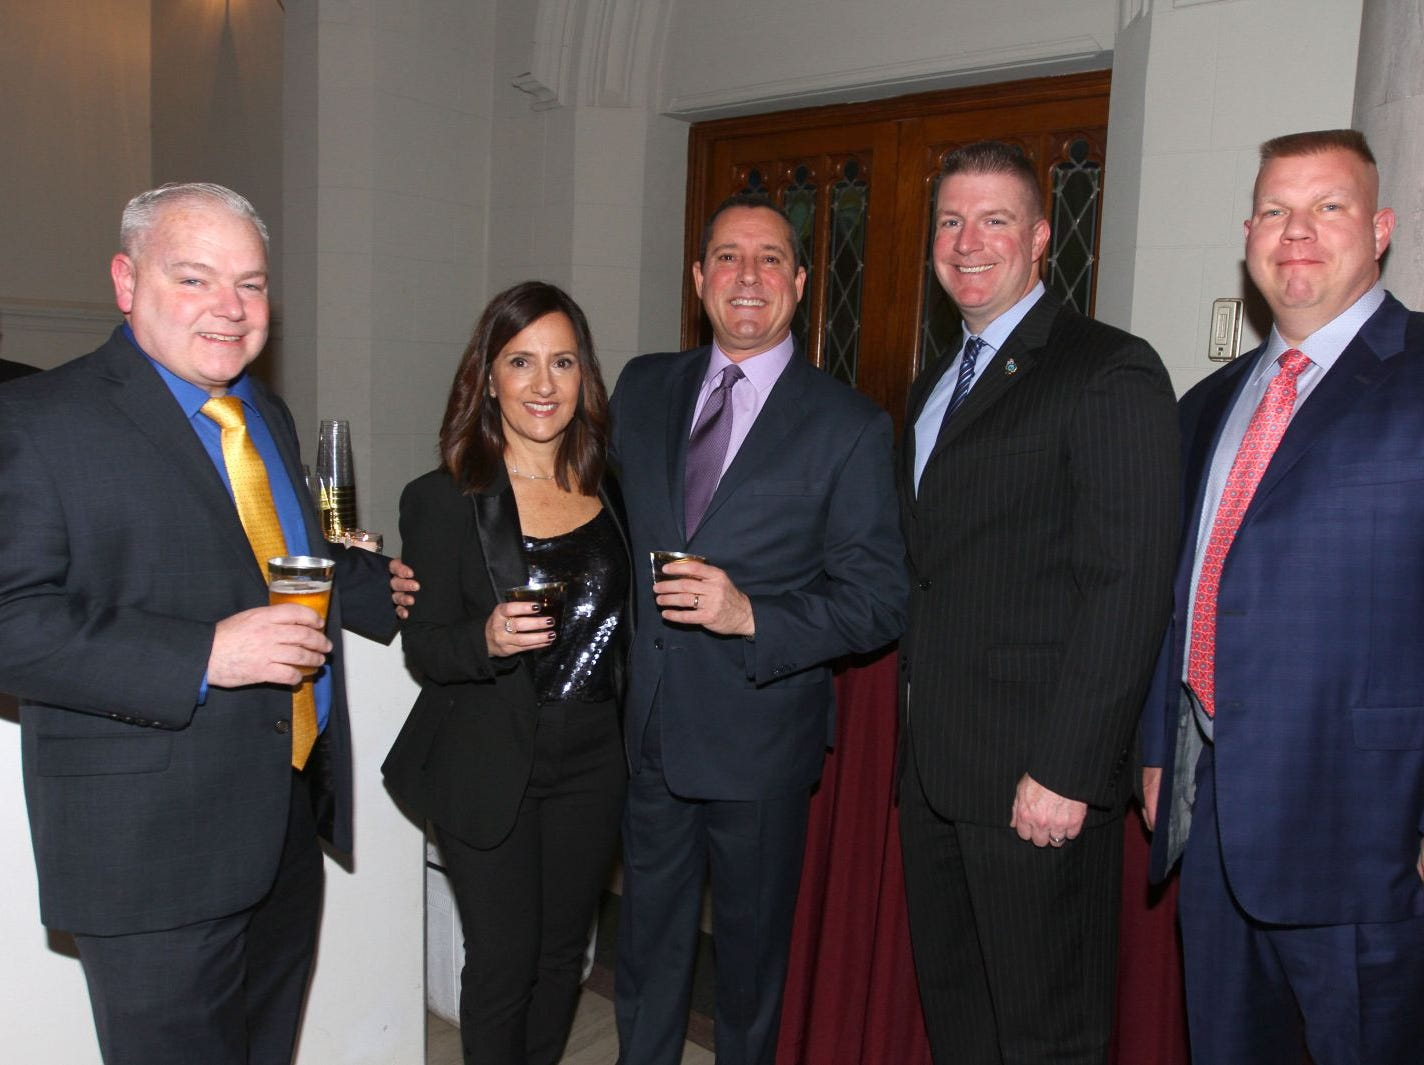 John Encke; Jordana Parker; Lee Parker; Dave Murphy; Tim Brock. Wyckoff Family YMCA hosted its 75th anniversary gala to celebrate its benefactors, held at the Rio Vista seminary in Mahwah. 11/16/2018